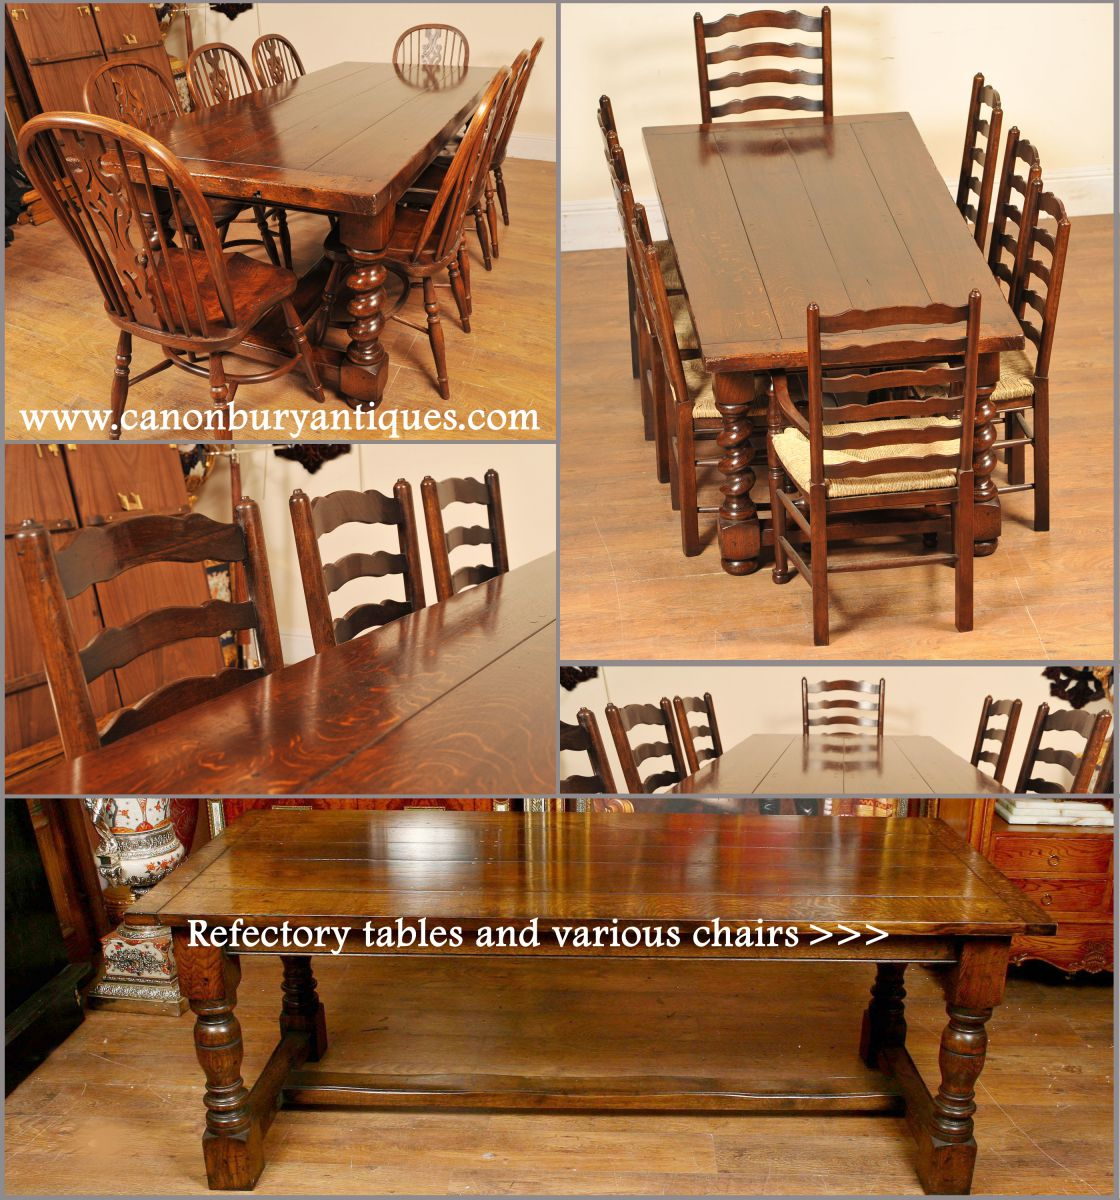 Large range of refectory tables too